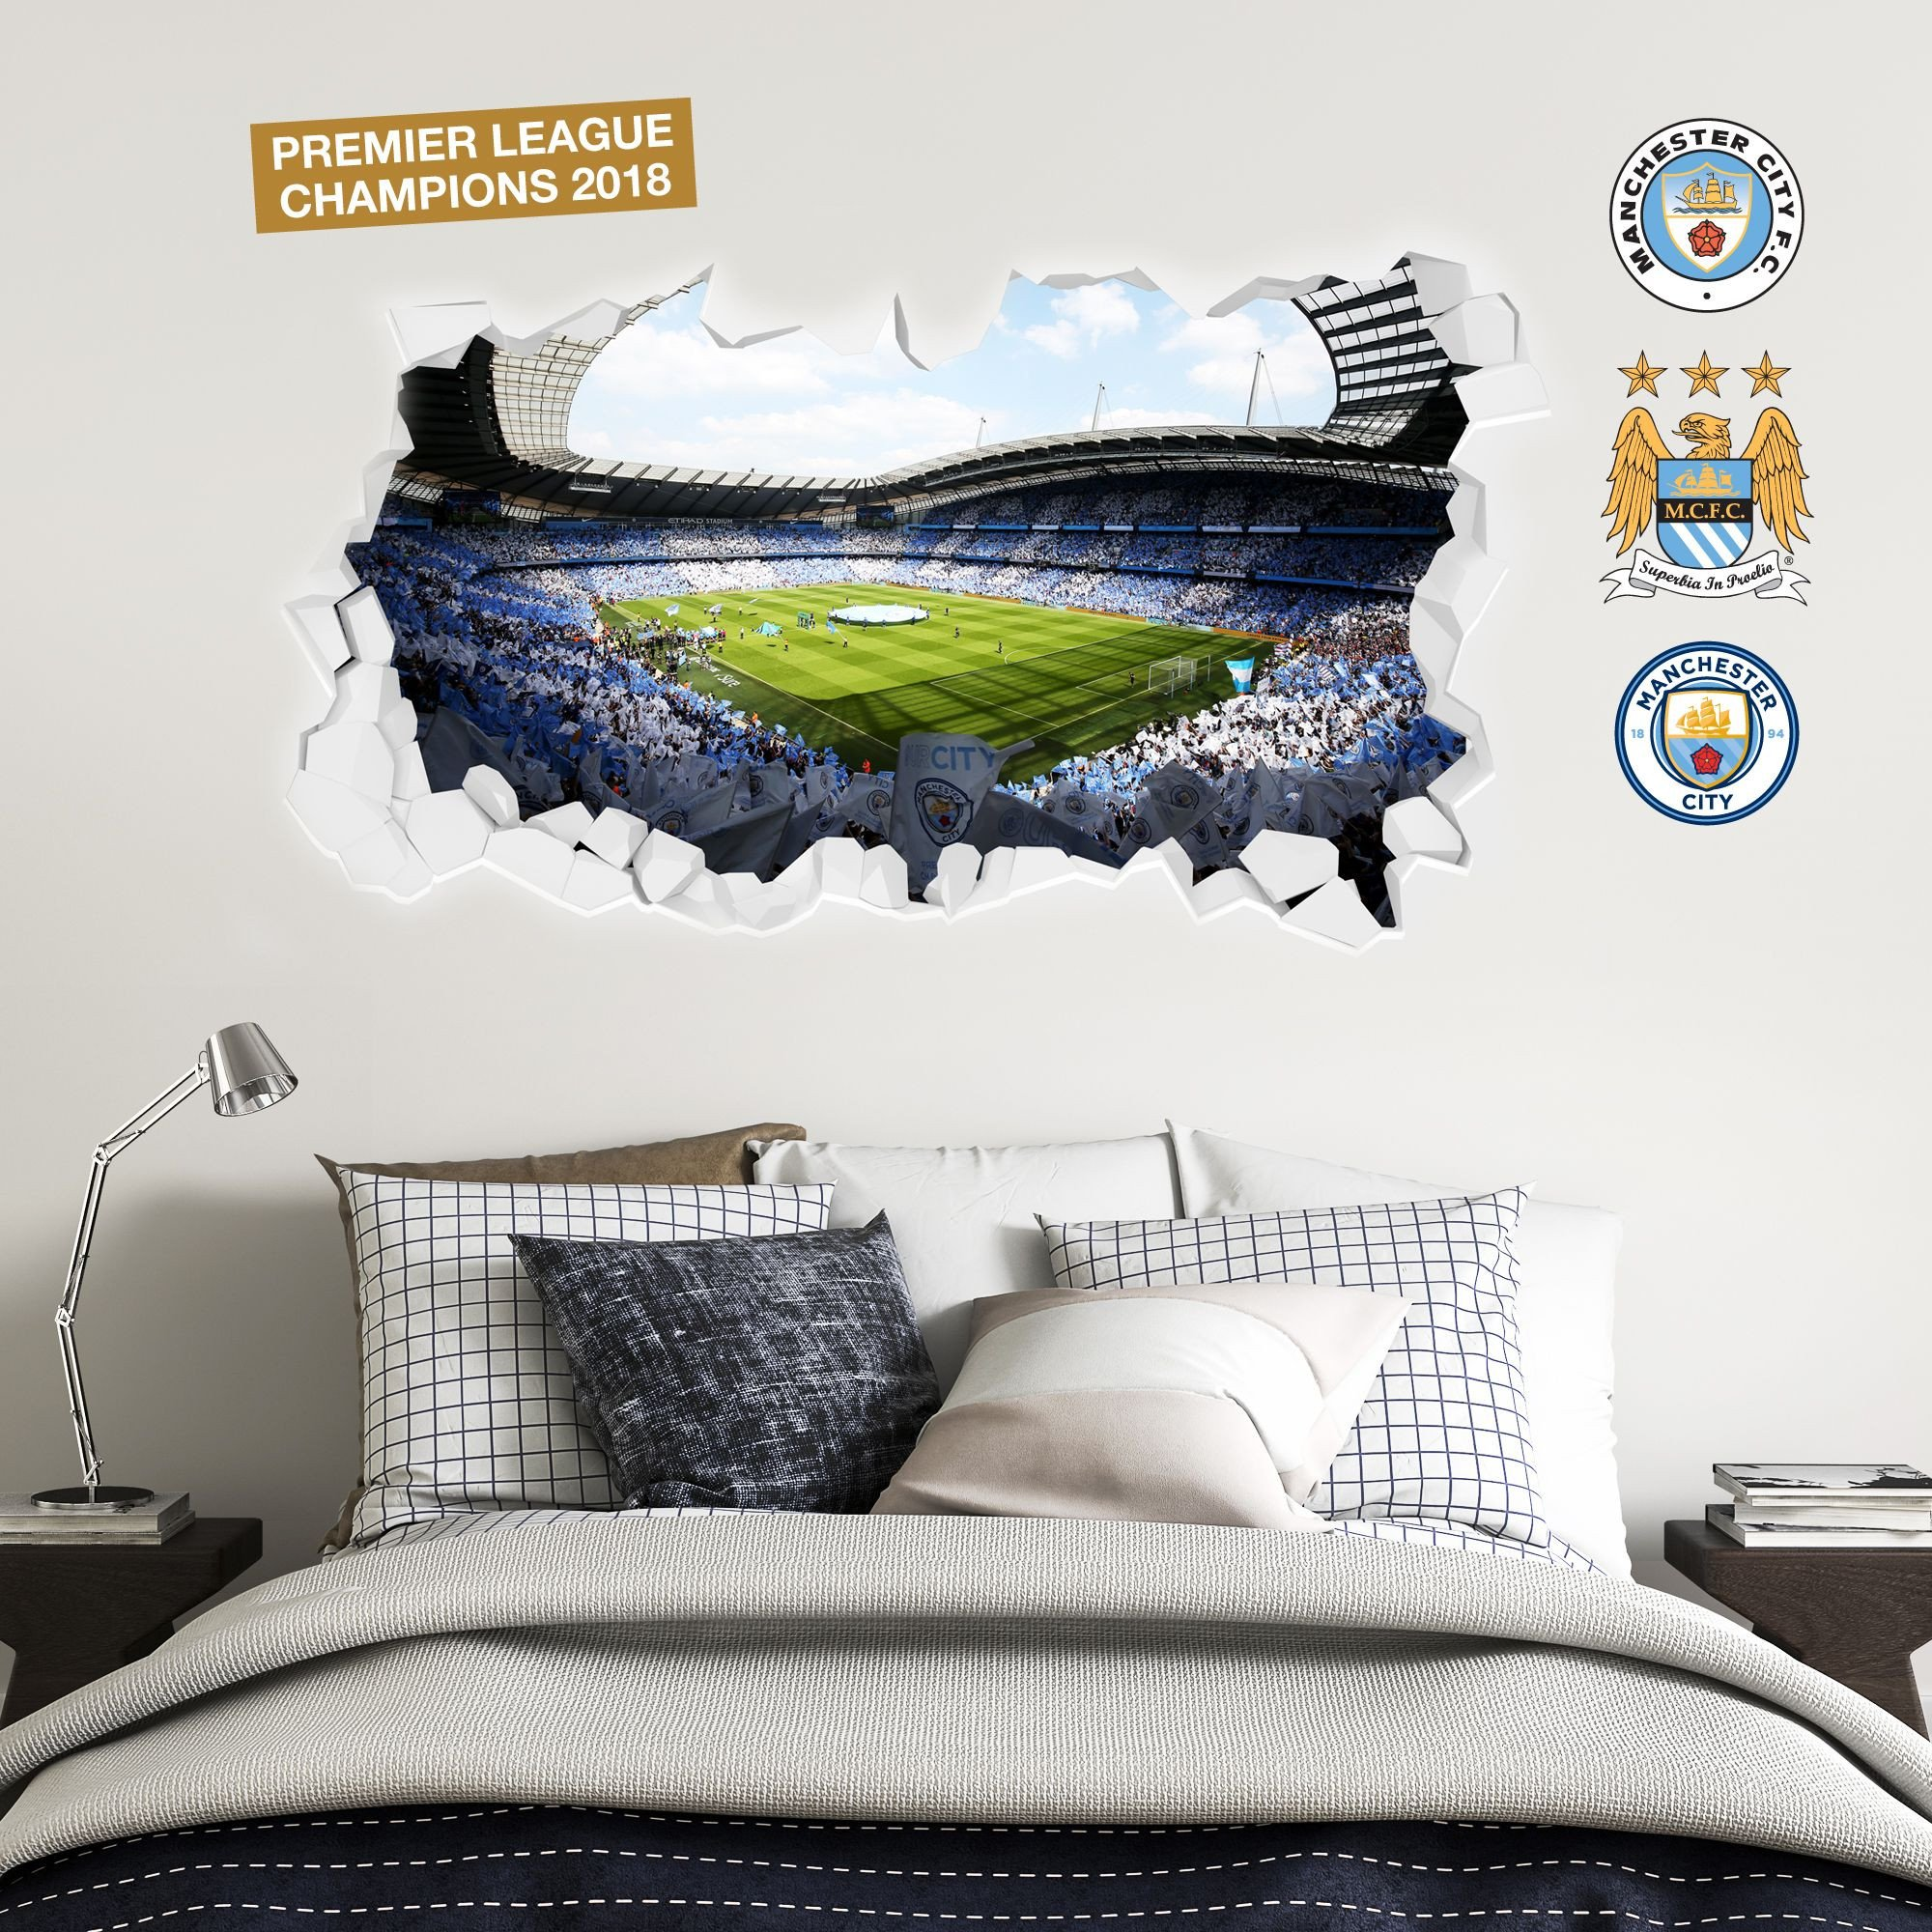 Bedroom Set for Men Luxury Pin On Manchester City F C Wall Stickers